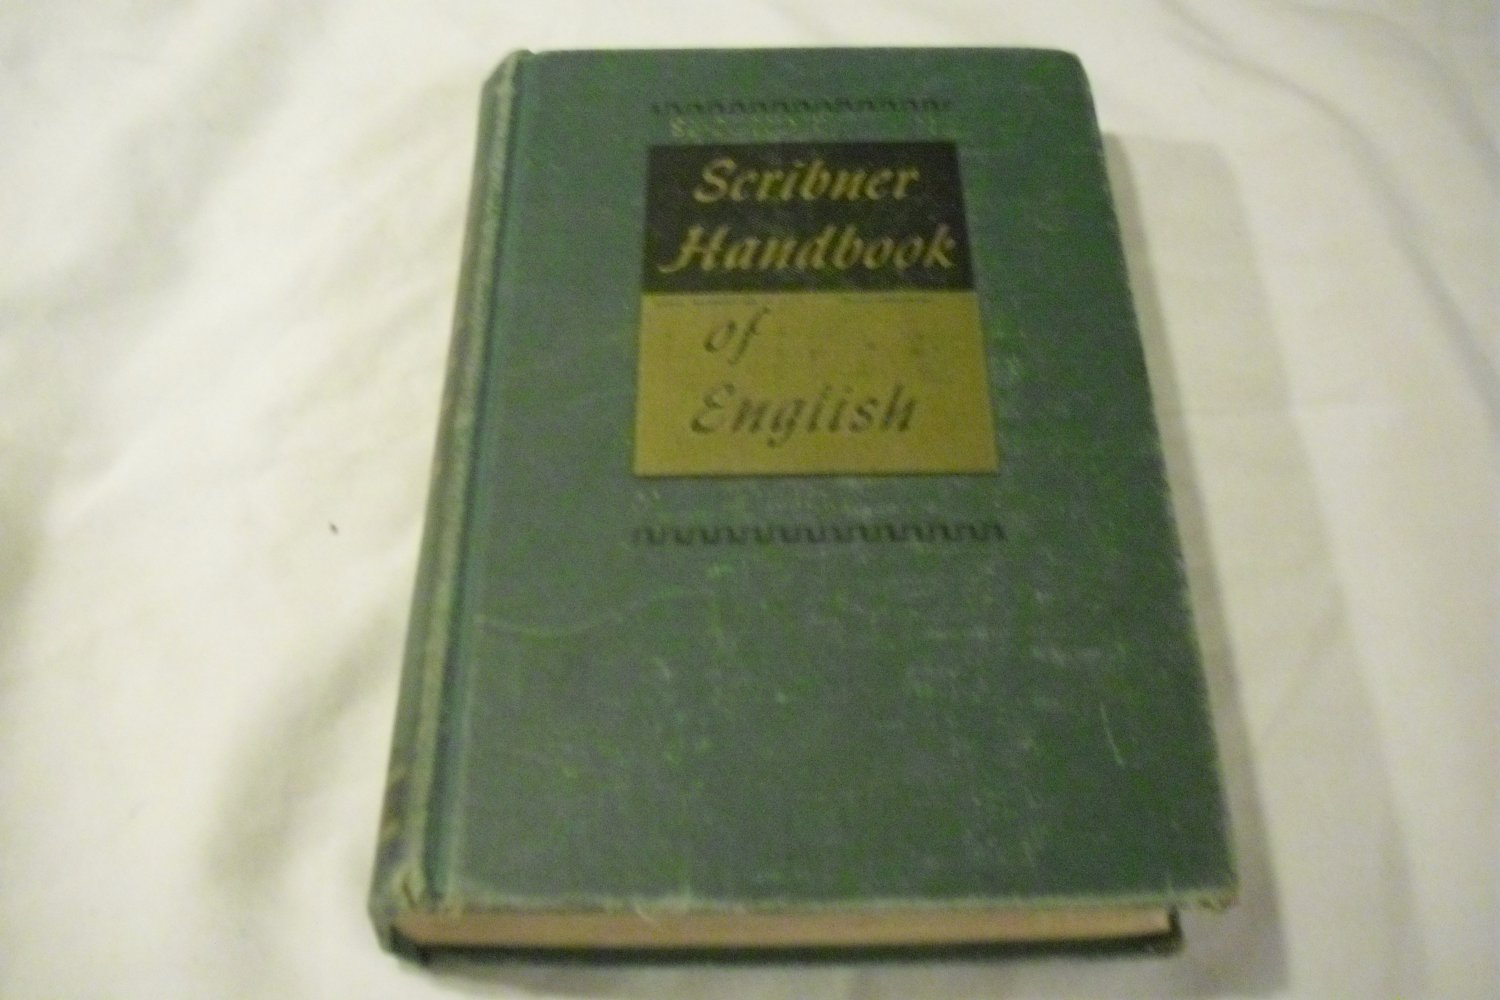 Scribner Handbook of English, 2nd Edition by Albert H. Marckwardt and Frederic G. Cassidy (1948)